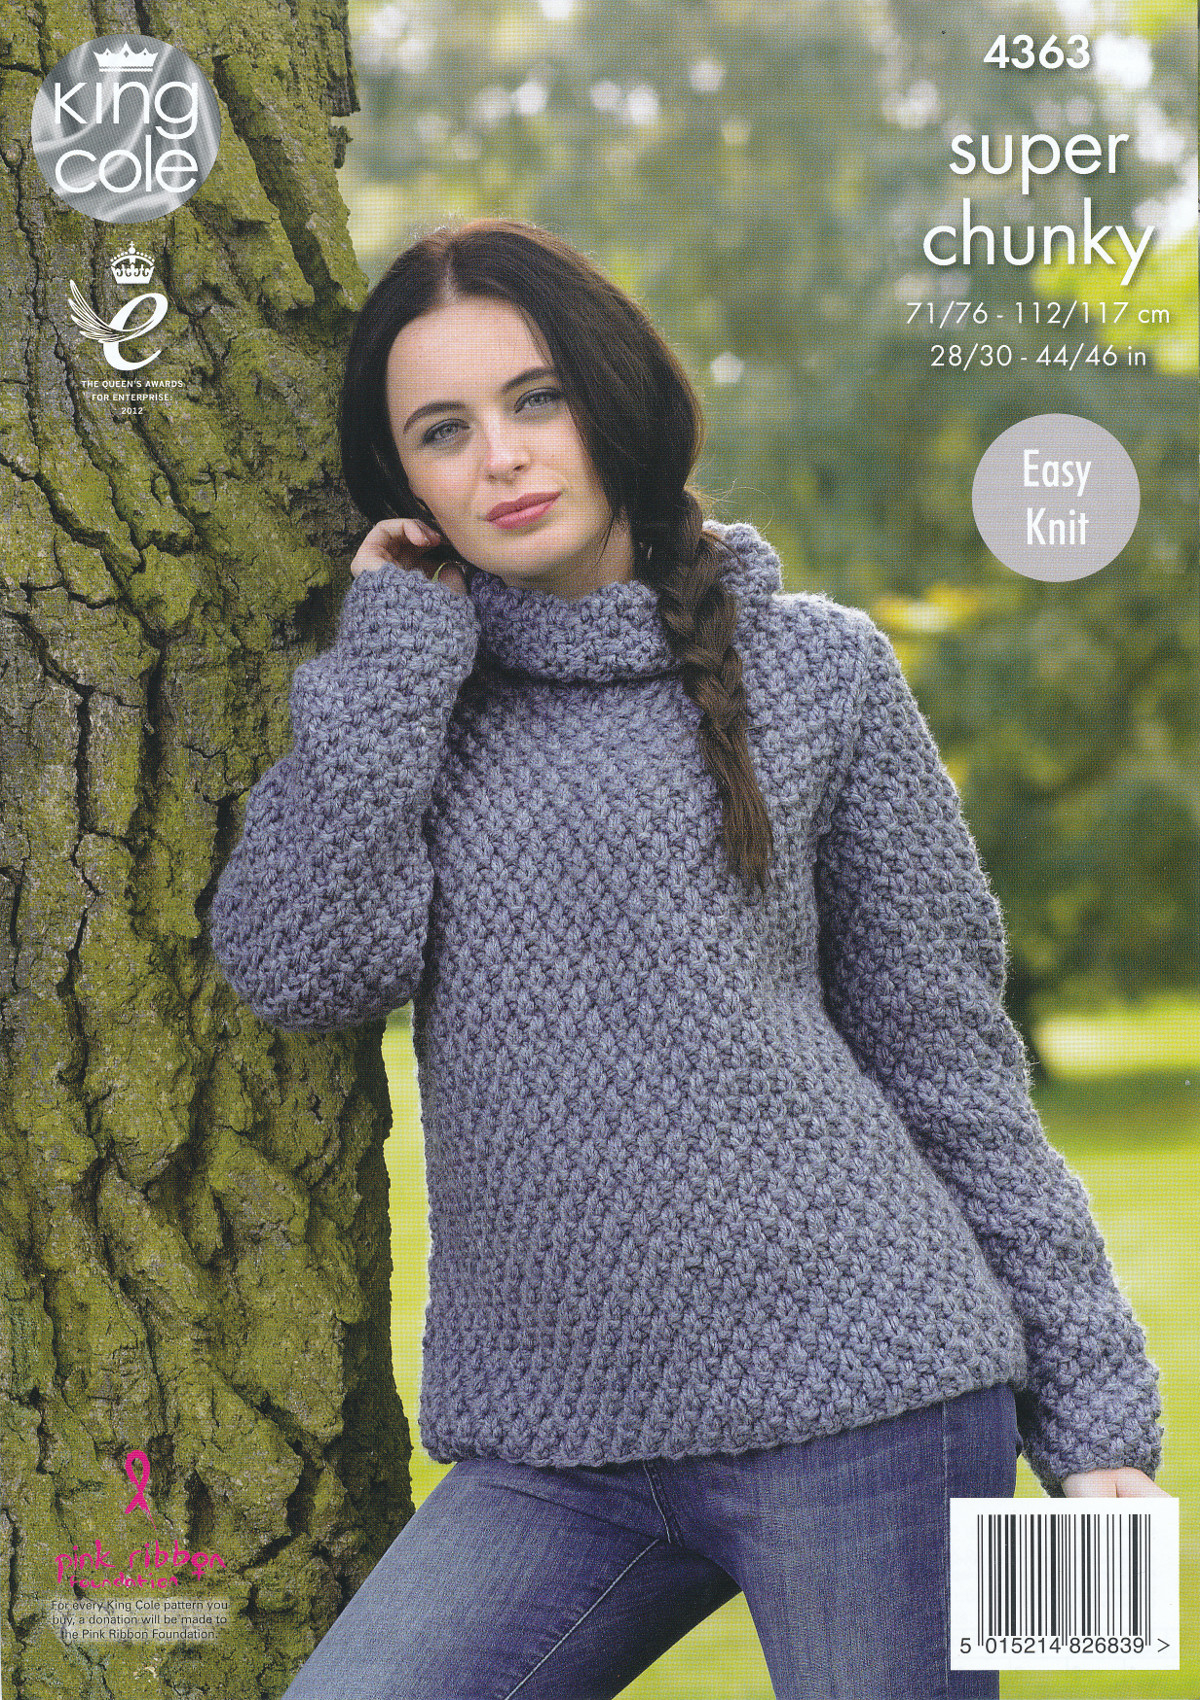 Knit Sweaters Patterns Details About Ladies Super Chunky Knitting Pattern King Cole Easy Knit Sweater Jacket 4363